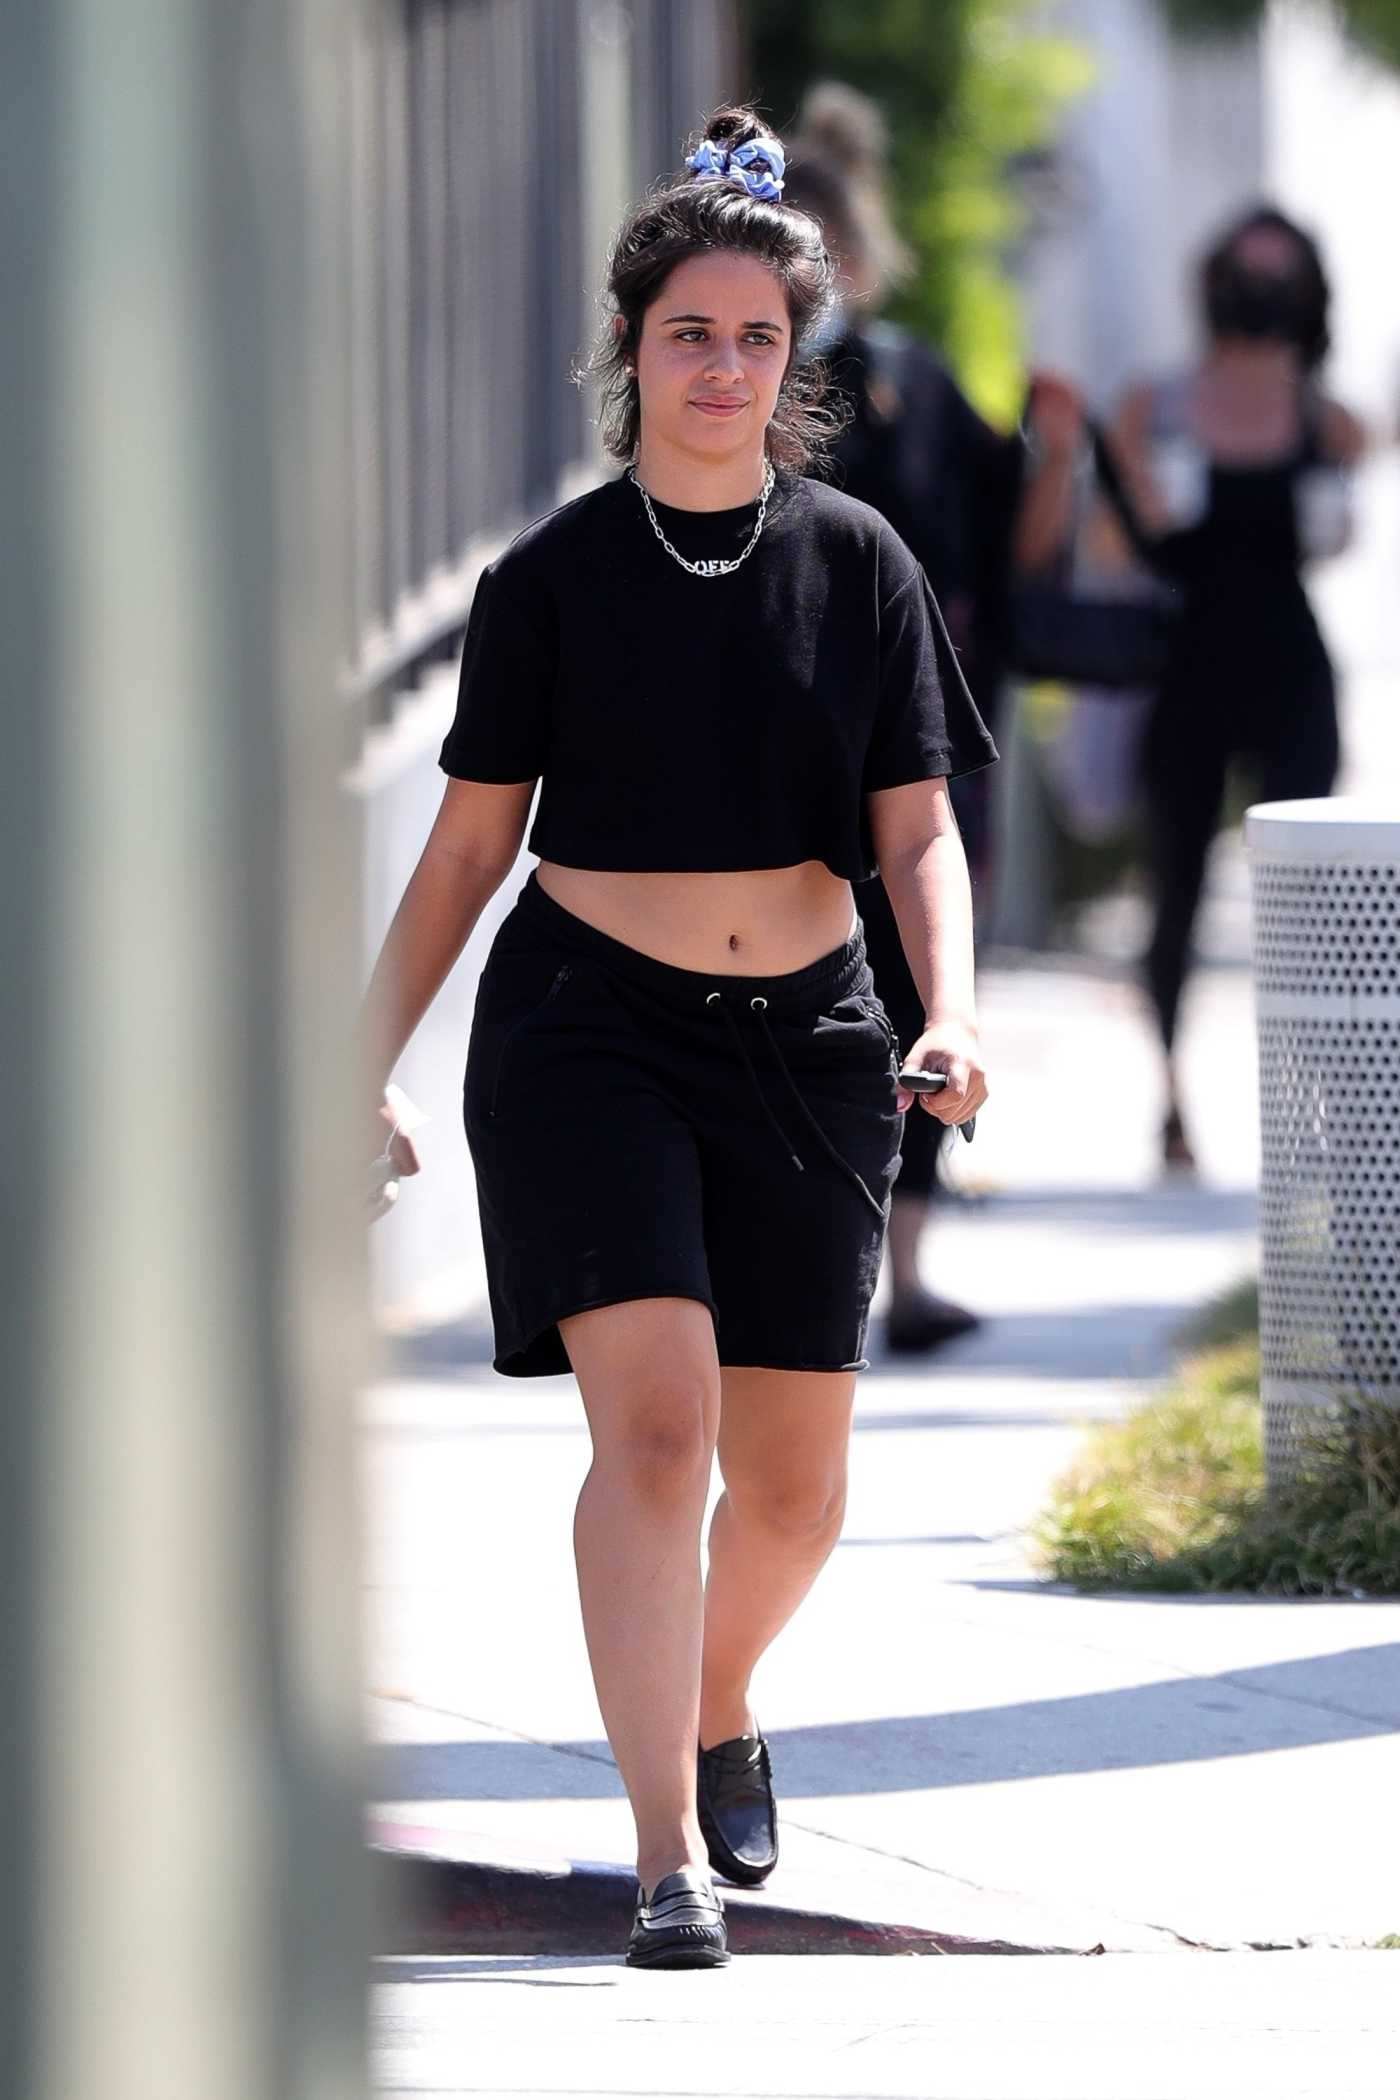 Camila Cabello in a Black Shorts Was Seen Out in Los Angeles 08/26/2021